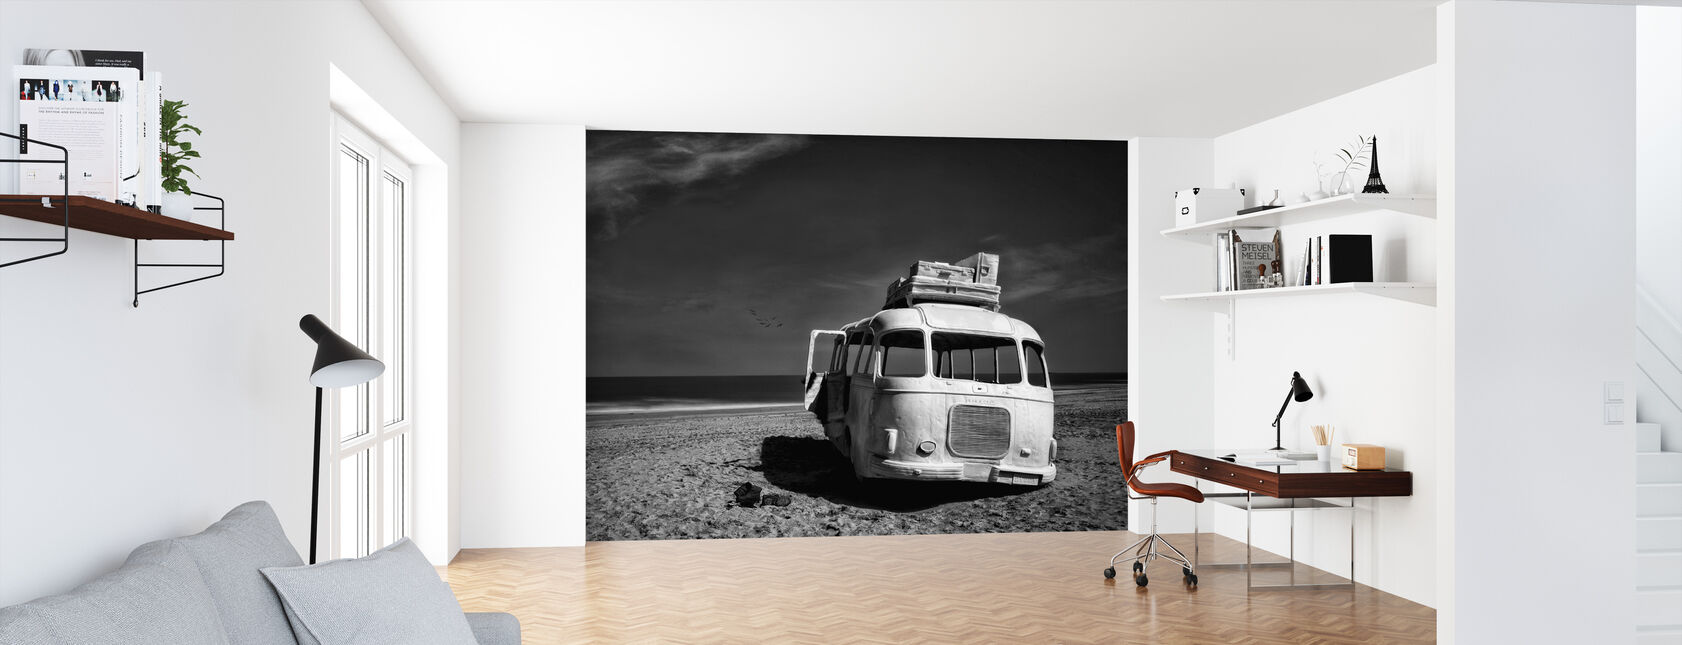 Beached Bus - Wallpaper - Office